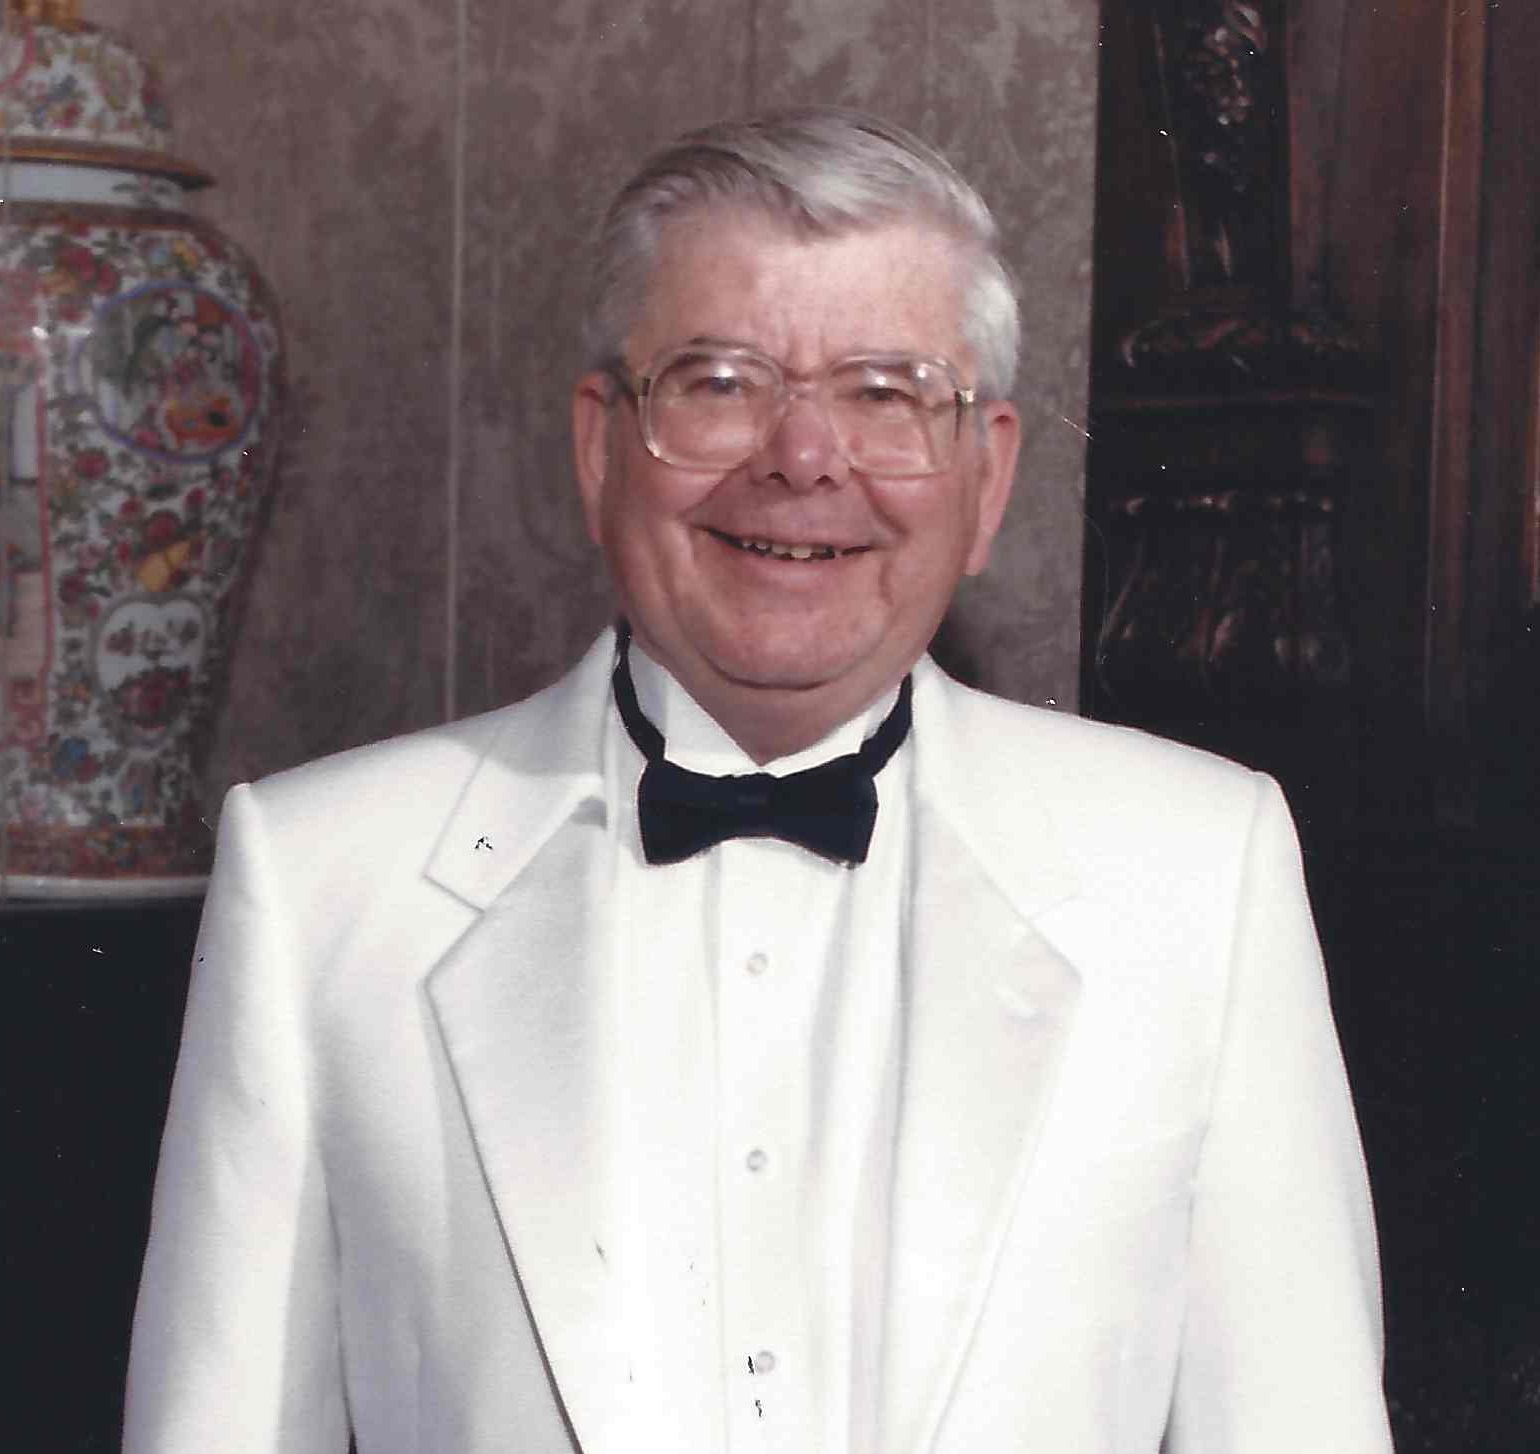 Robert James Robinson, 83